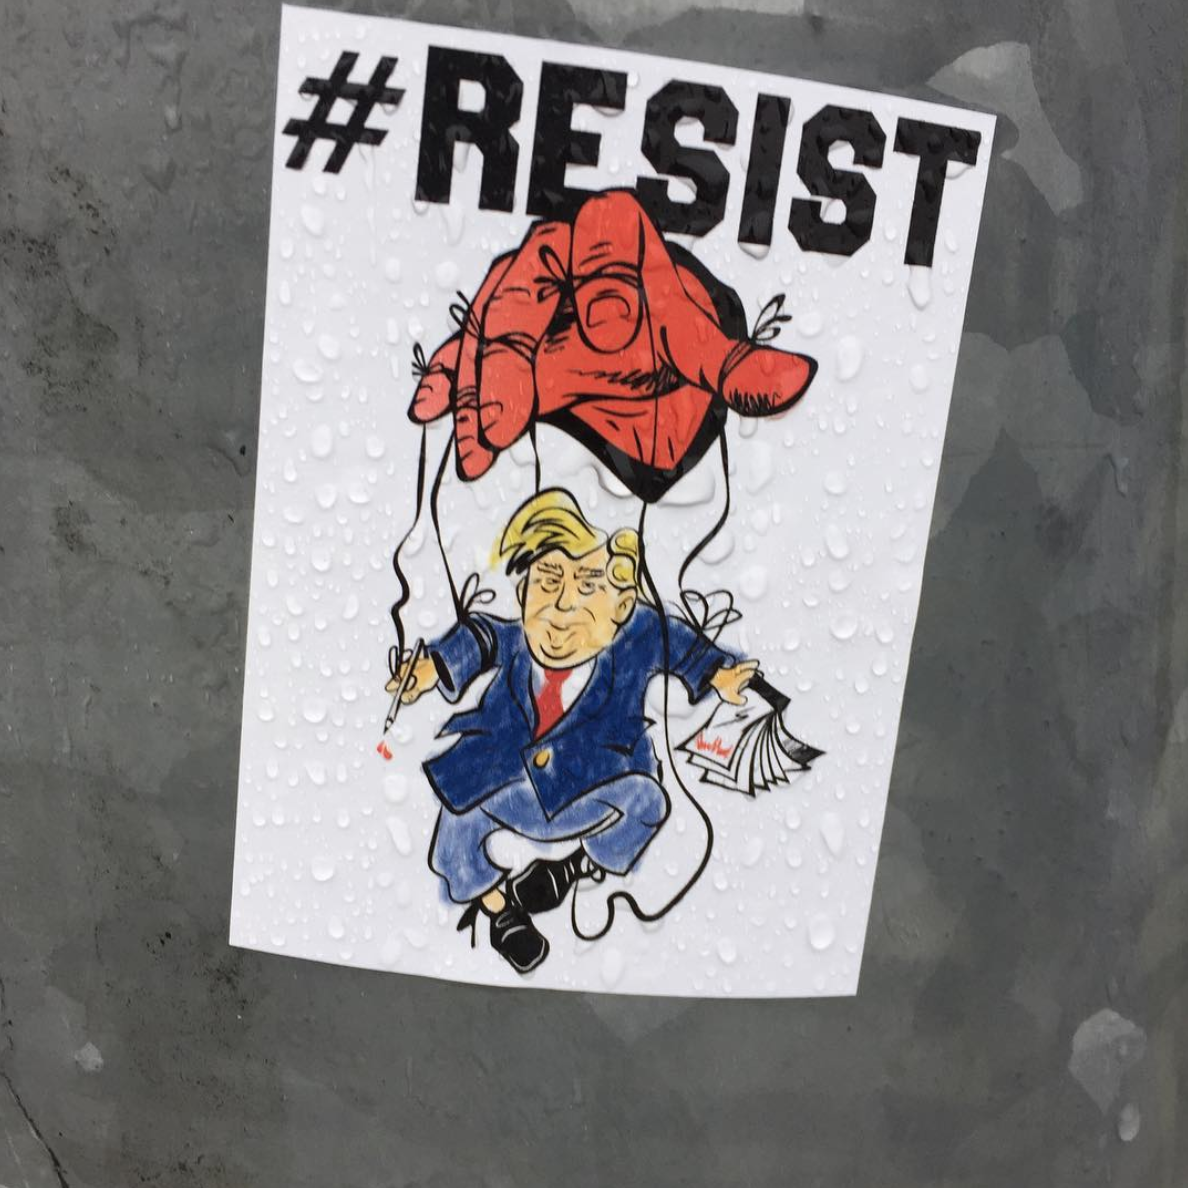 """Copy of Picture of President Trump as a marionette doll controlled by a red hand with the caption """"#RESIST"""""""